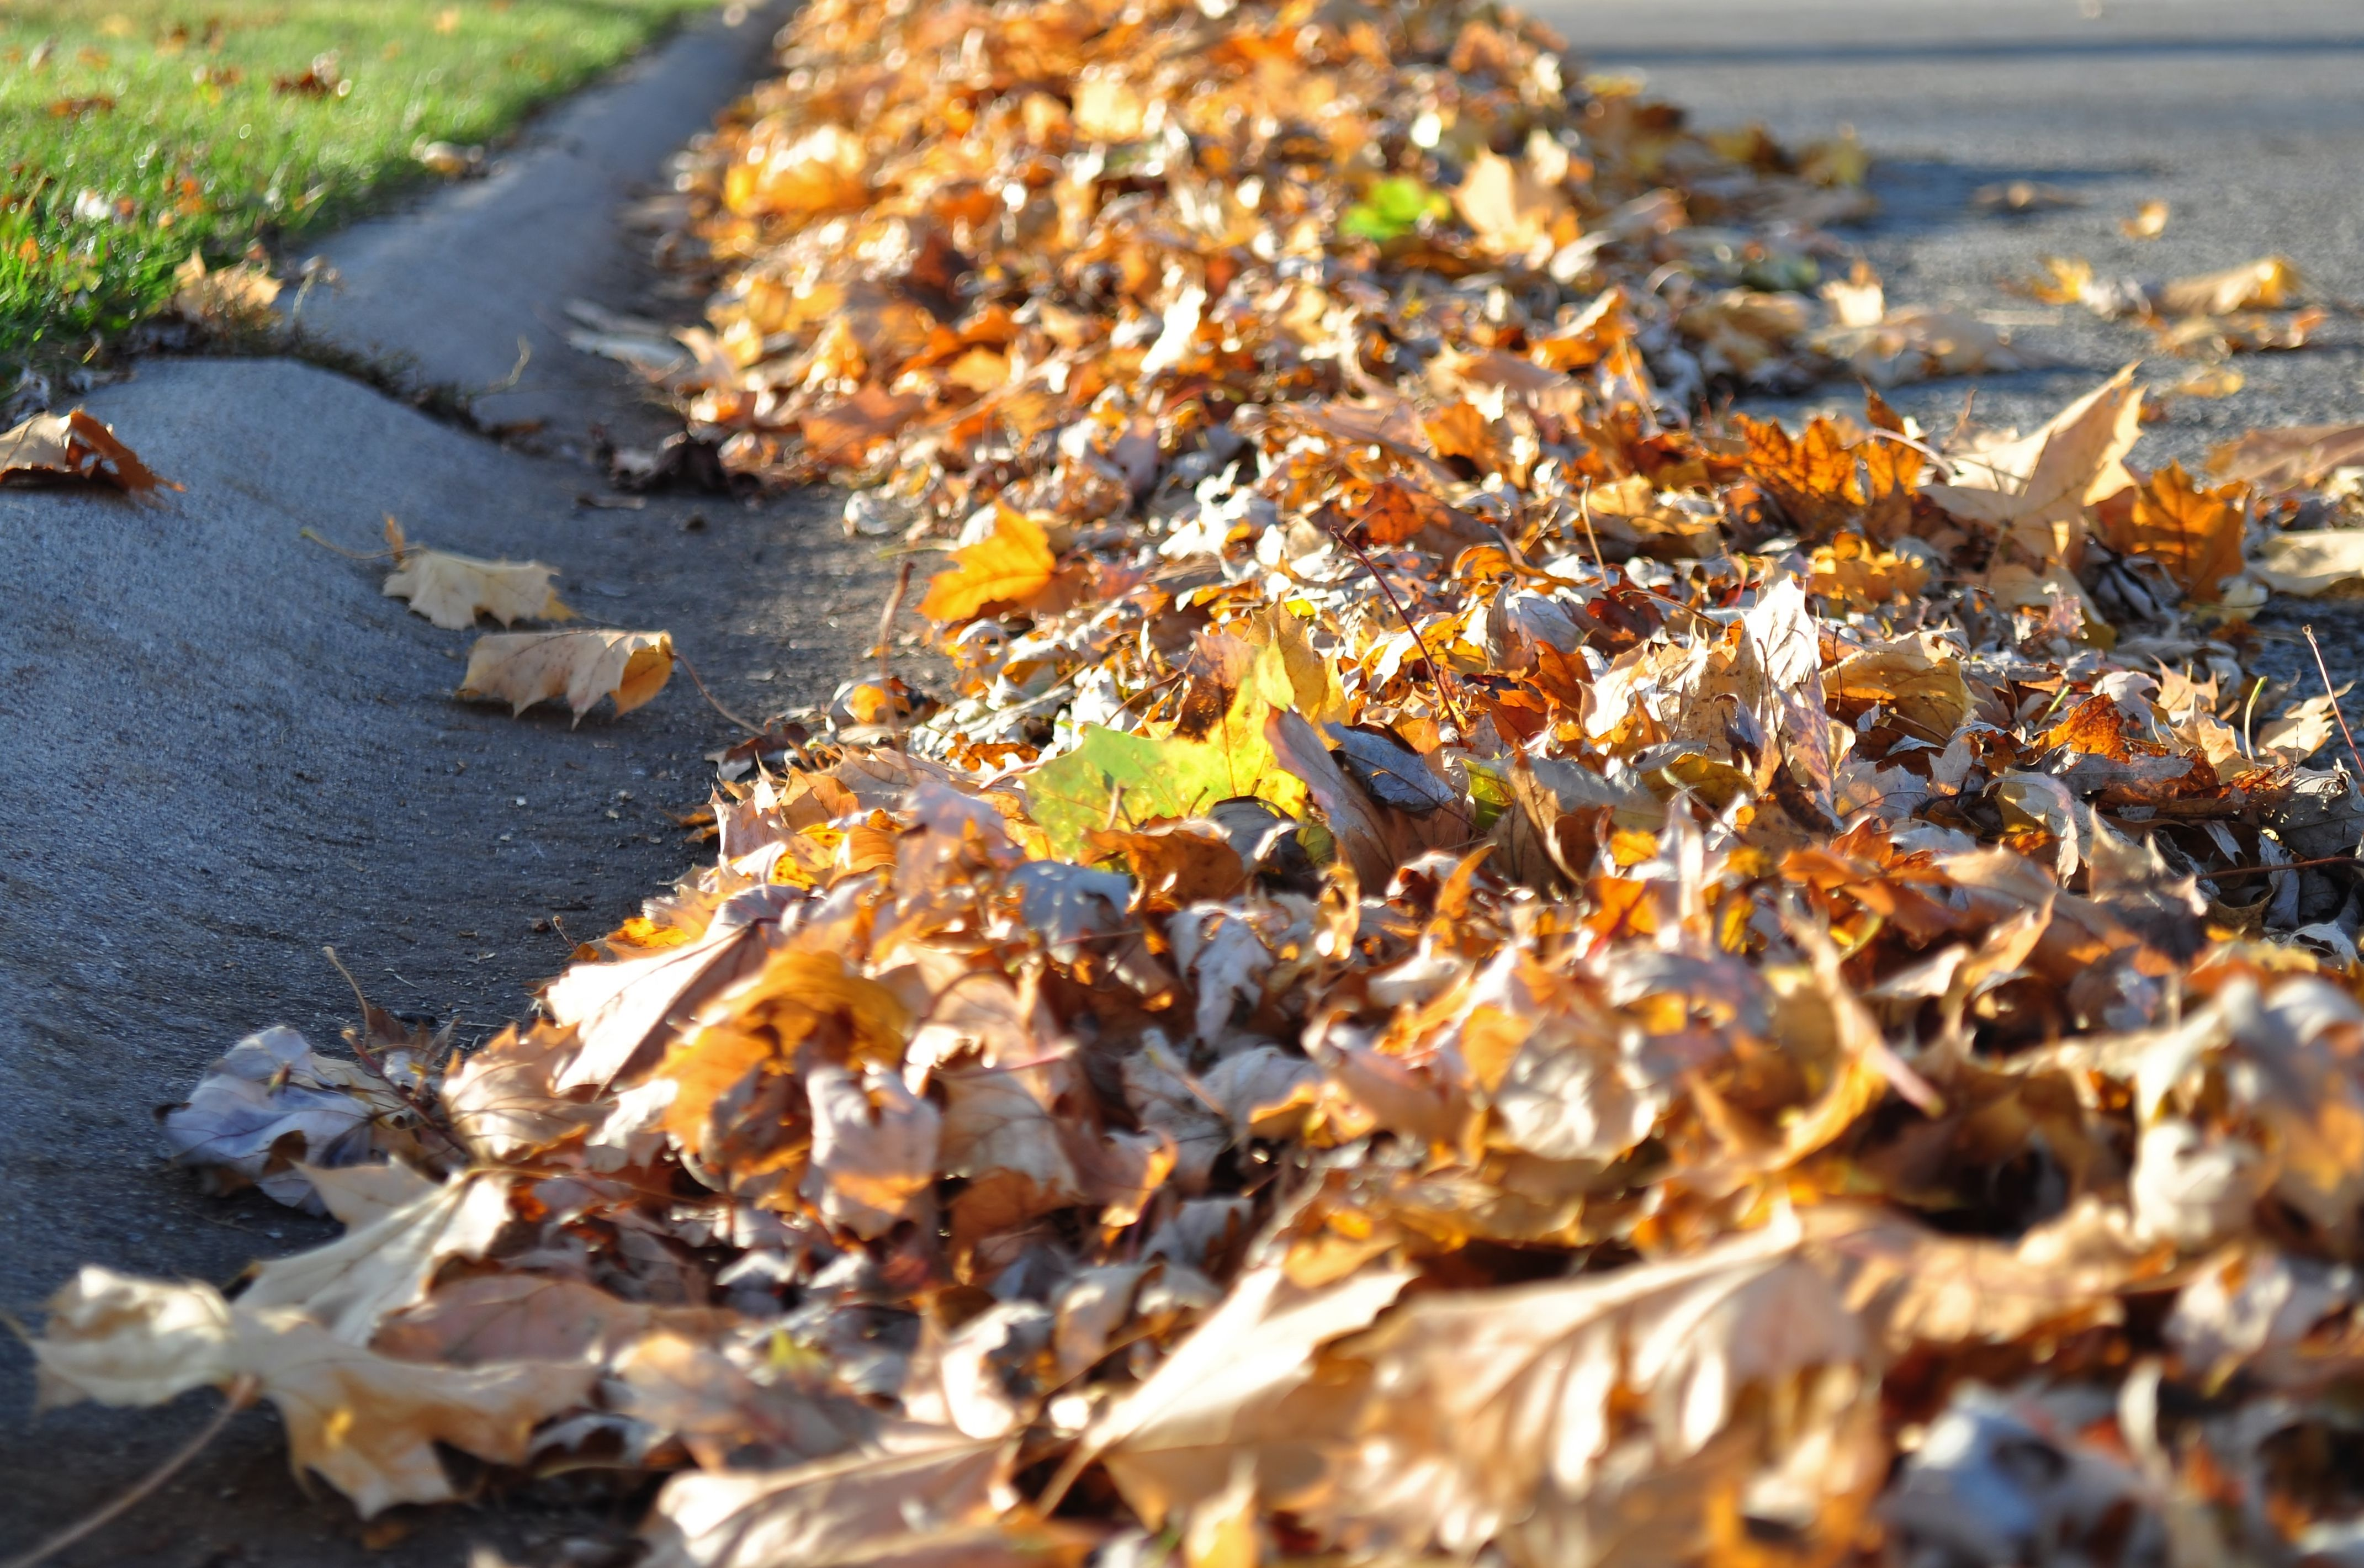 Pile of dry leaves on the street.